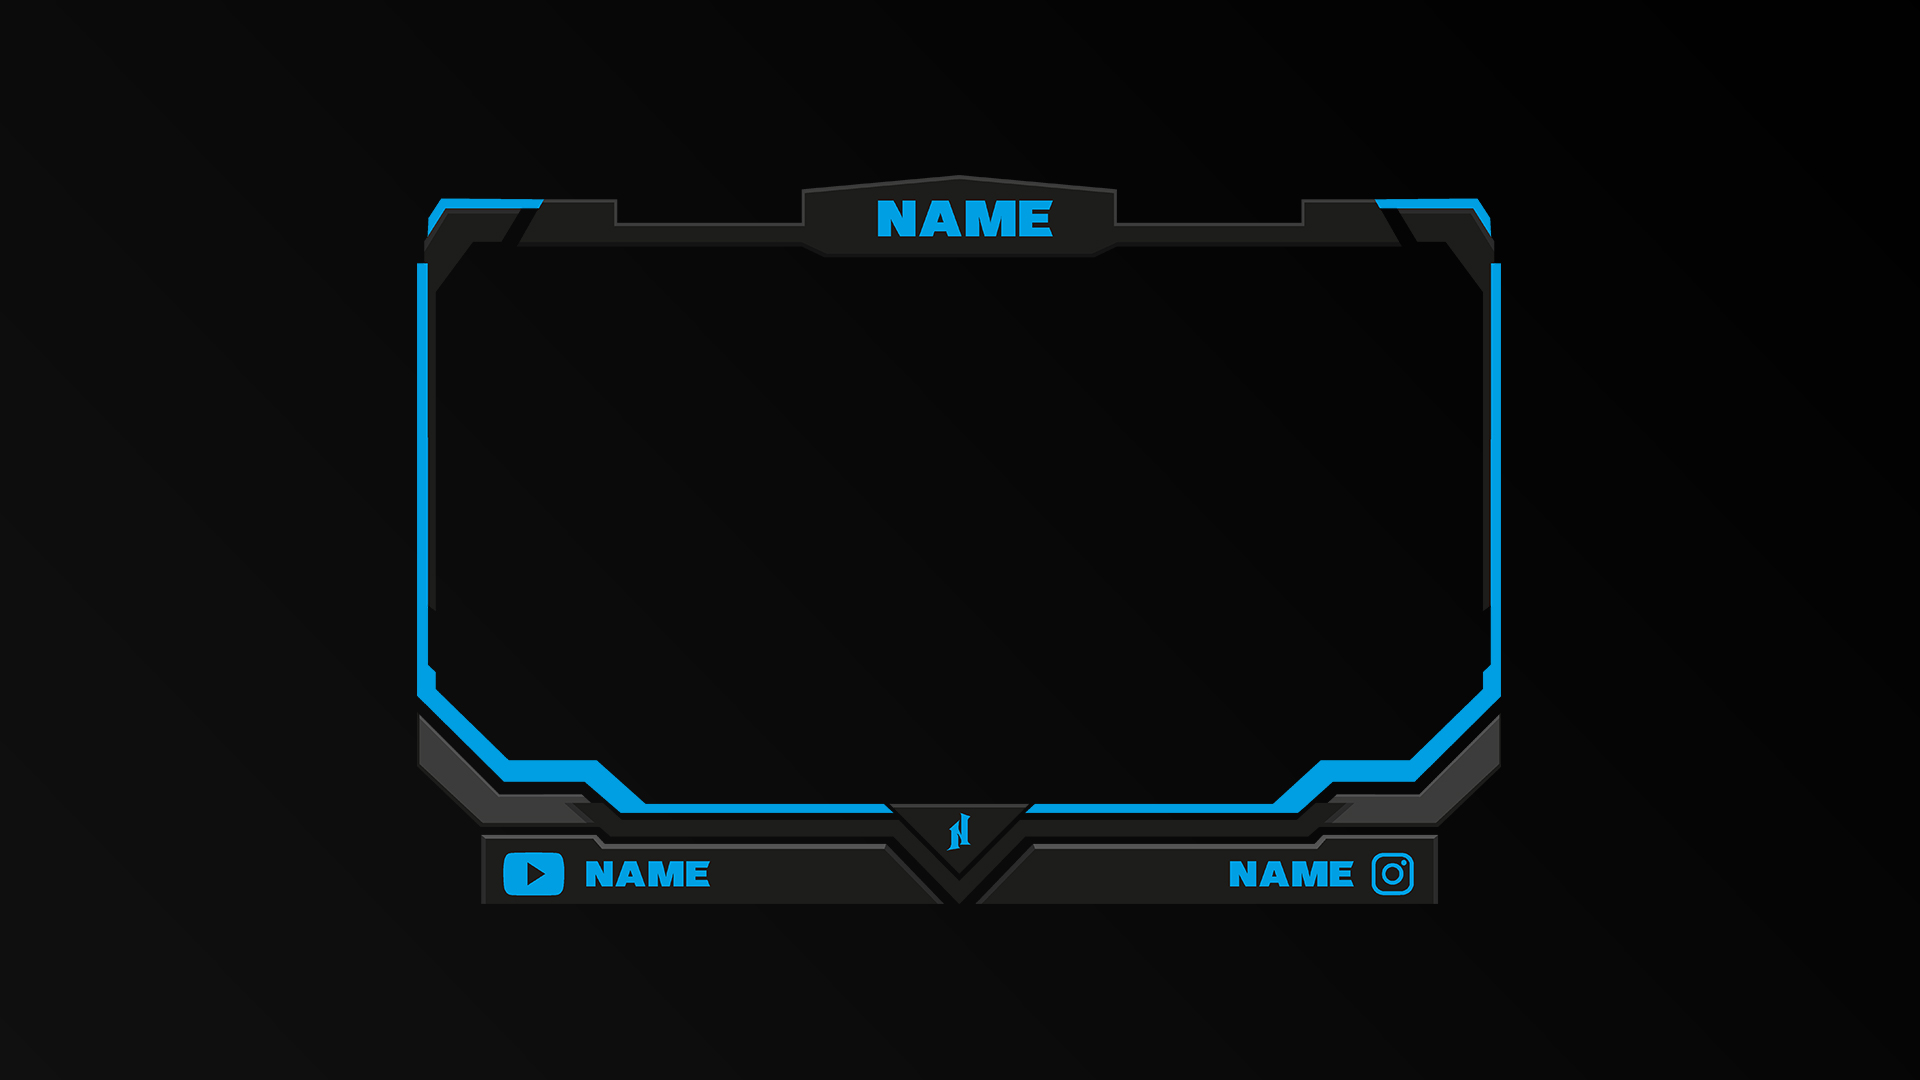 premade webcam streamer overlays